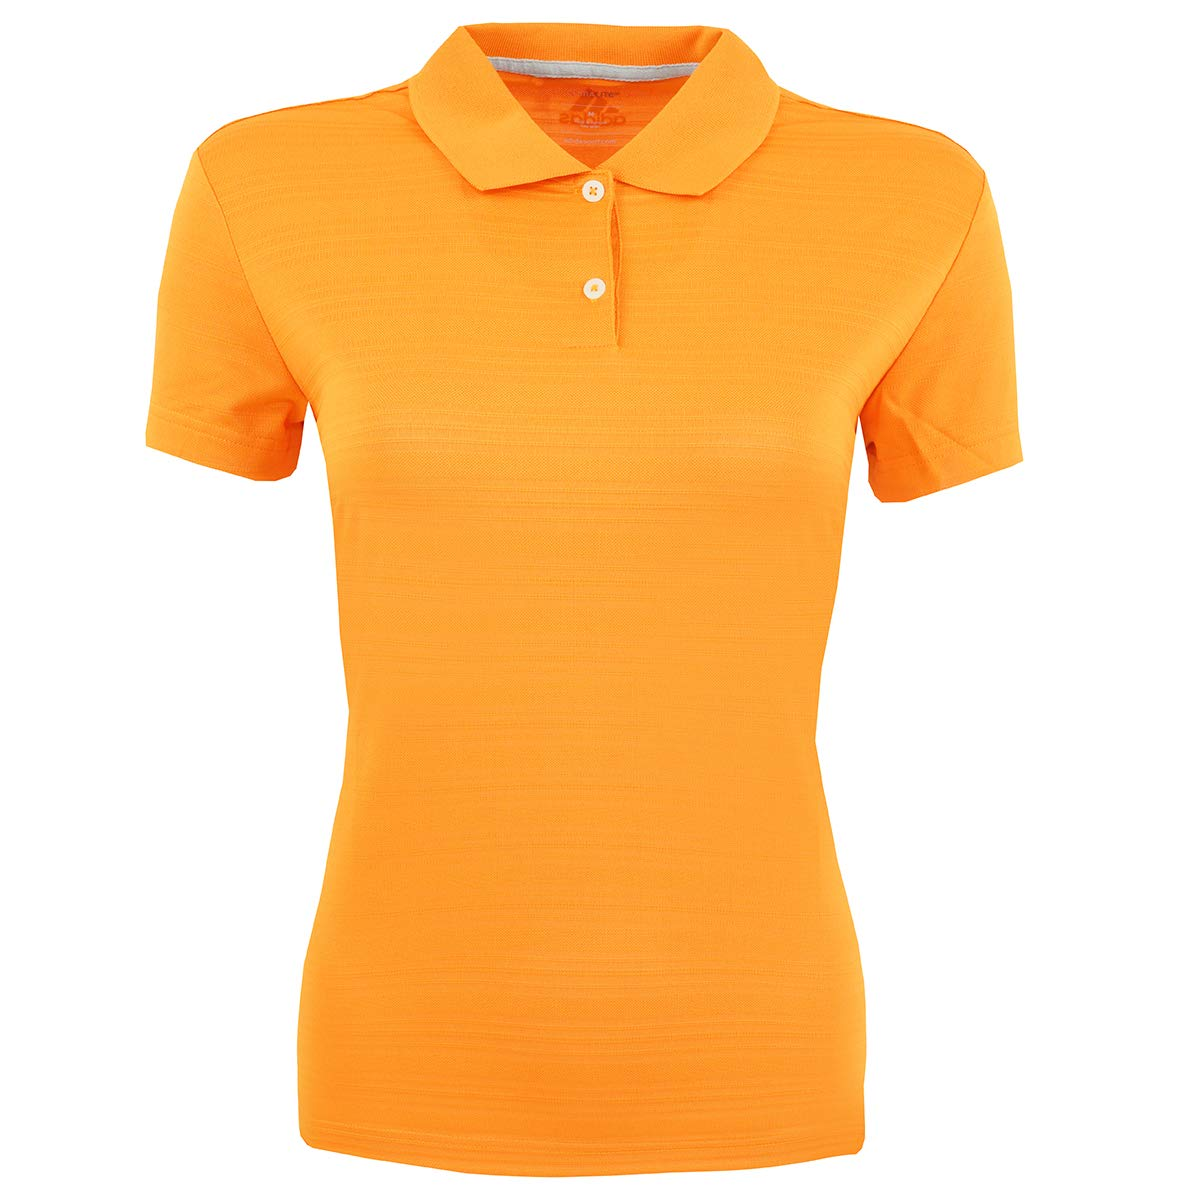 adidas Golf Womens Climalite Textured Short-Sleeve Polo (A162) -Light ORAN -S